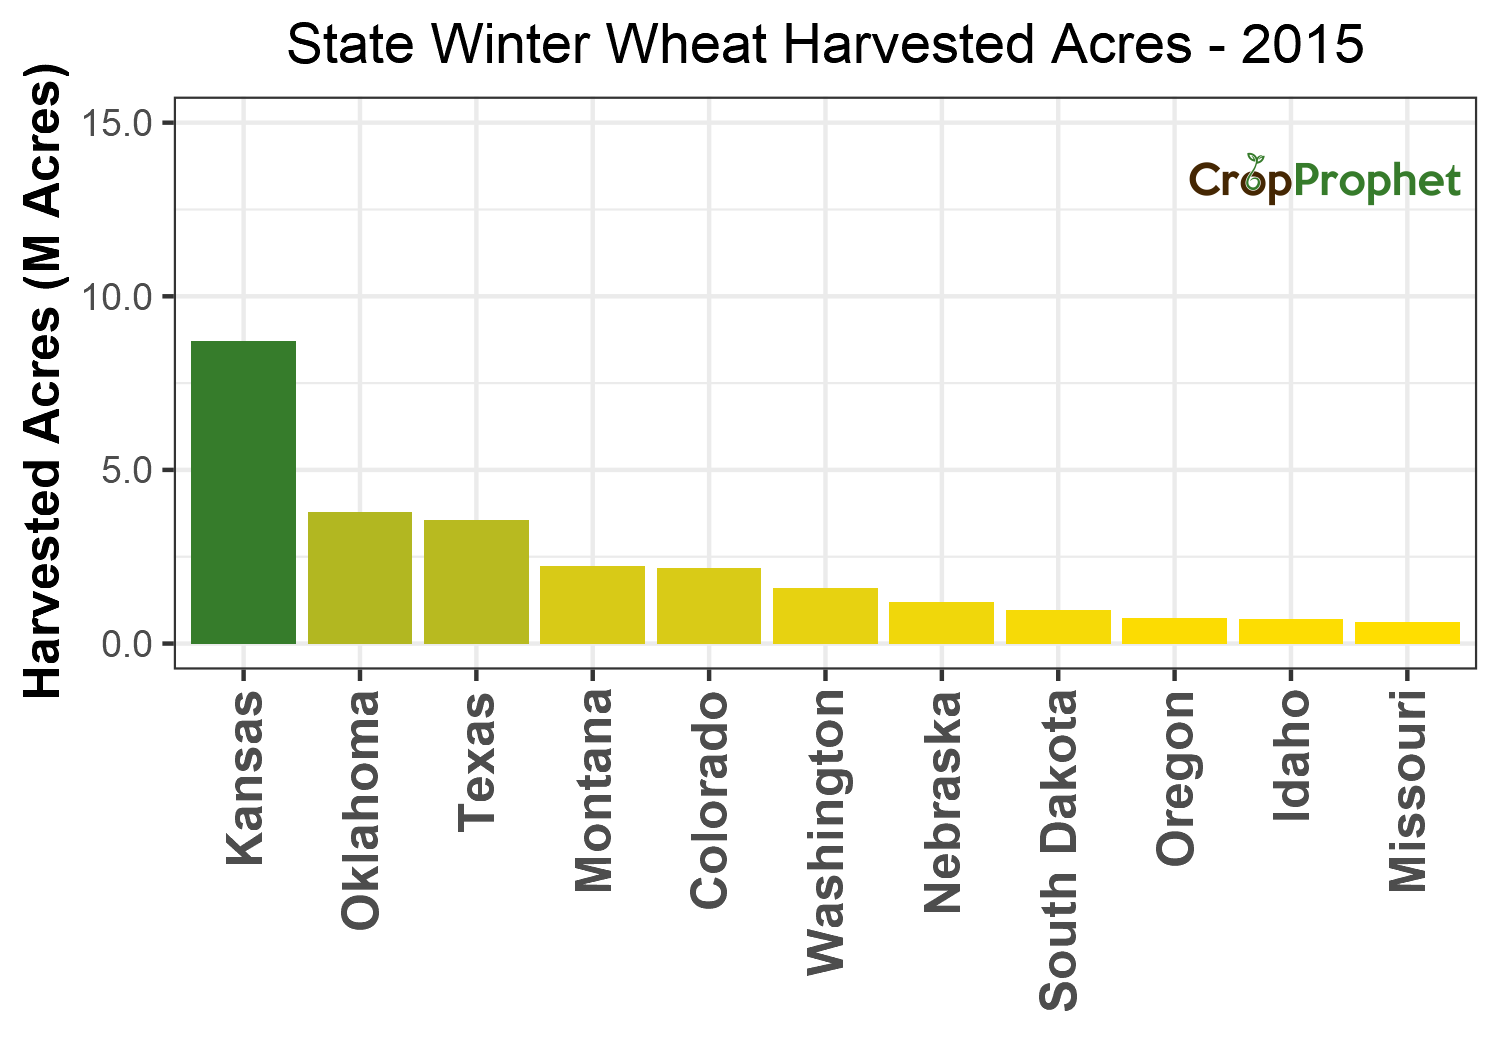 Winter wheat Harvested Acres by State - 2015 Rankings